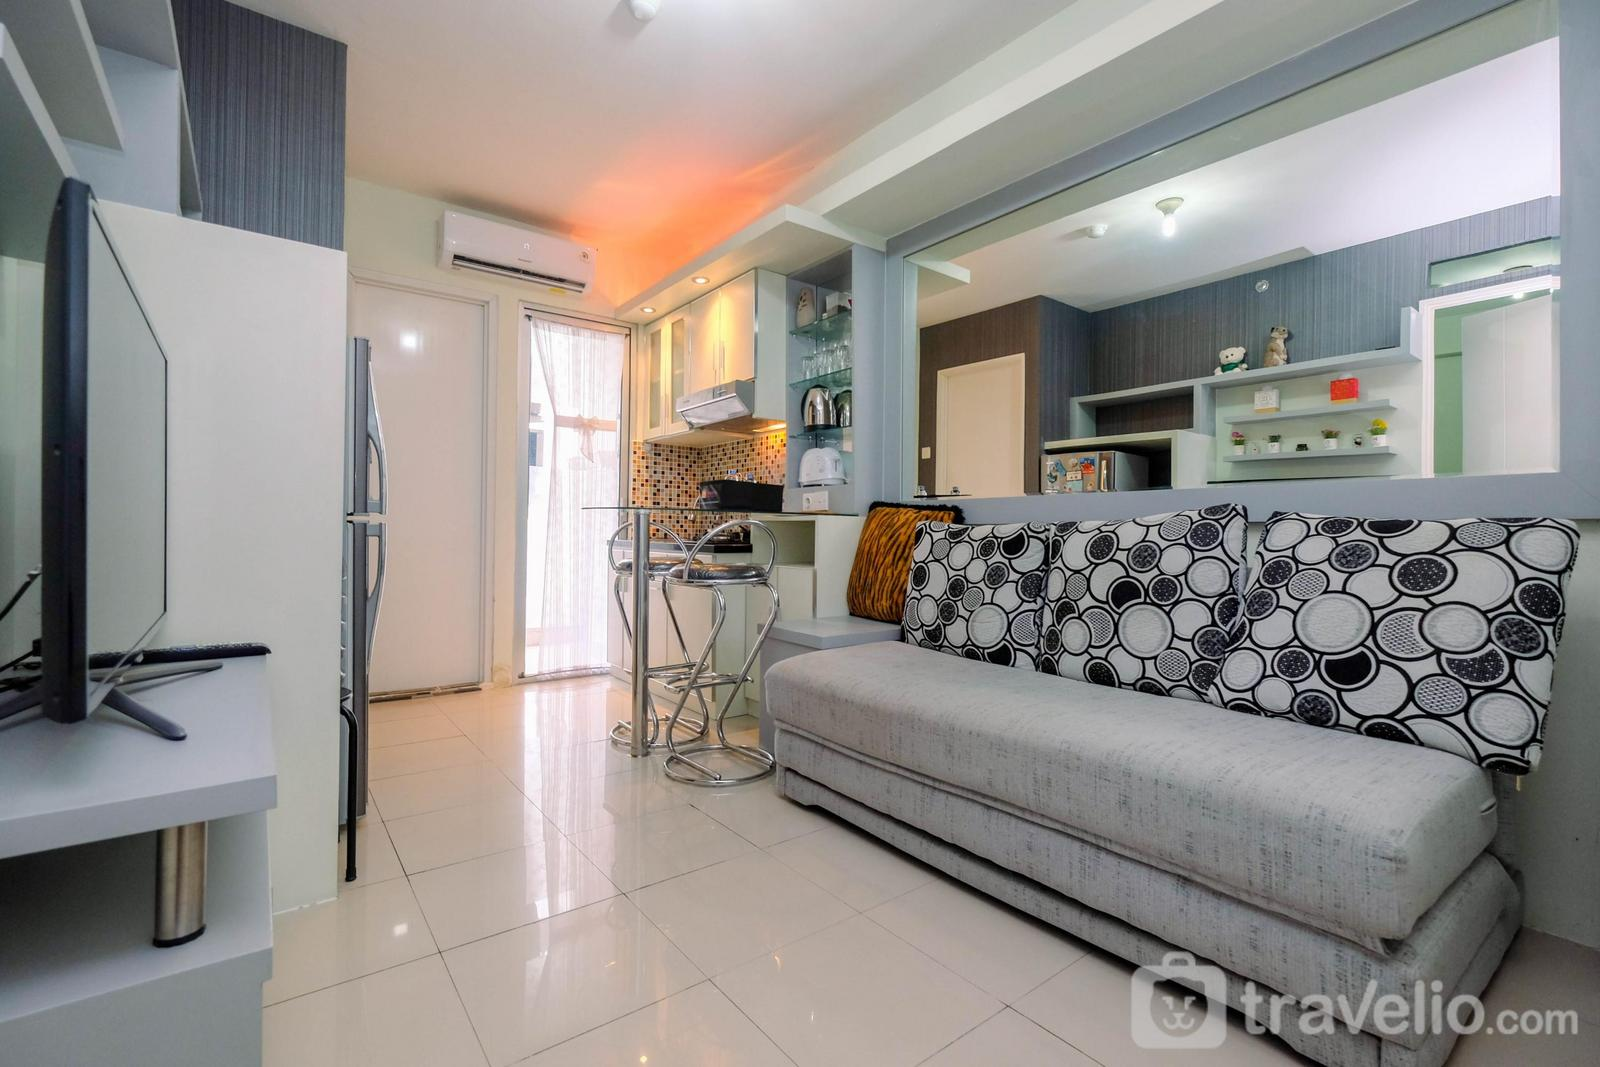 Green Palace Kalibata - Modern and Cozy 2BR Apartment at Green Palace Kalibata By Travelio